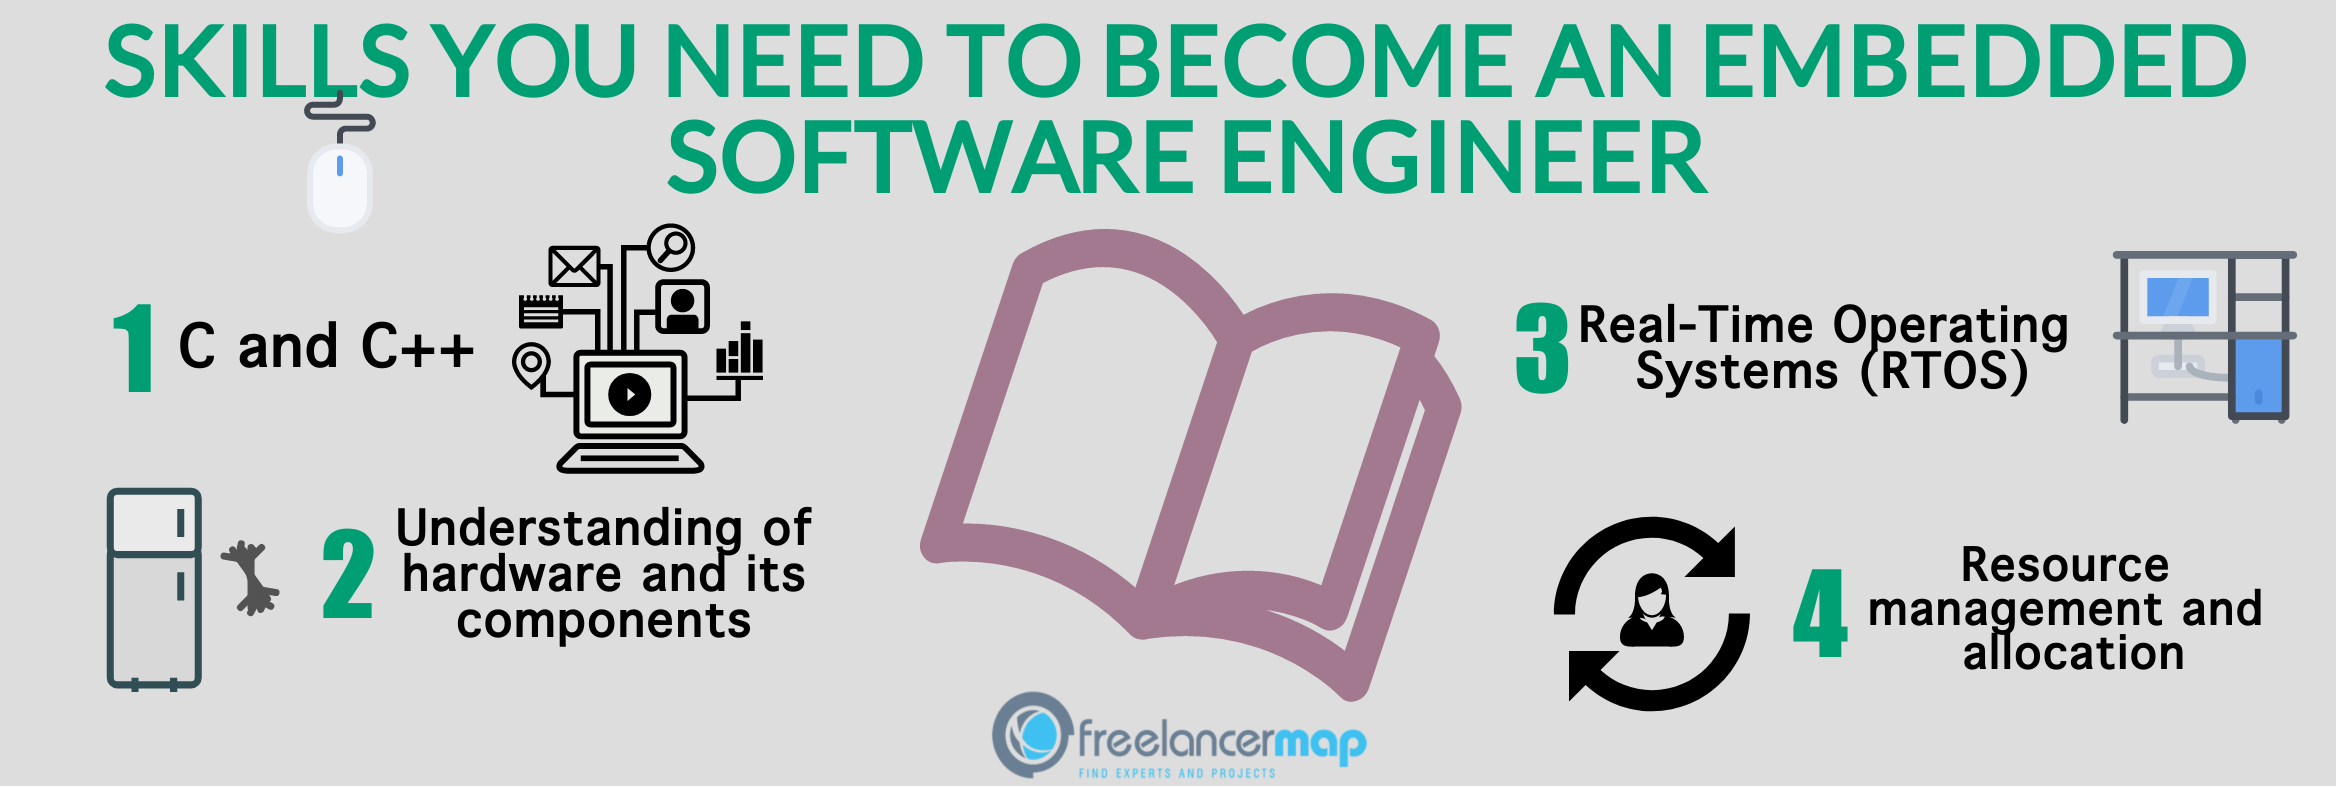 Embedded Software Engineer >> Become An Embedded Software Engineer